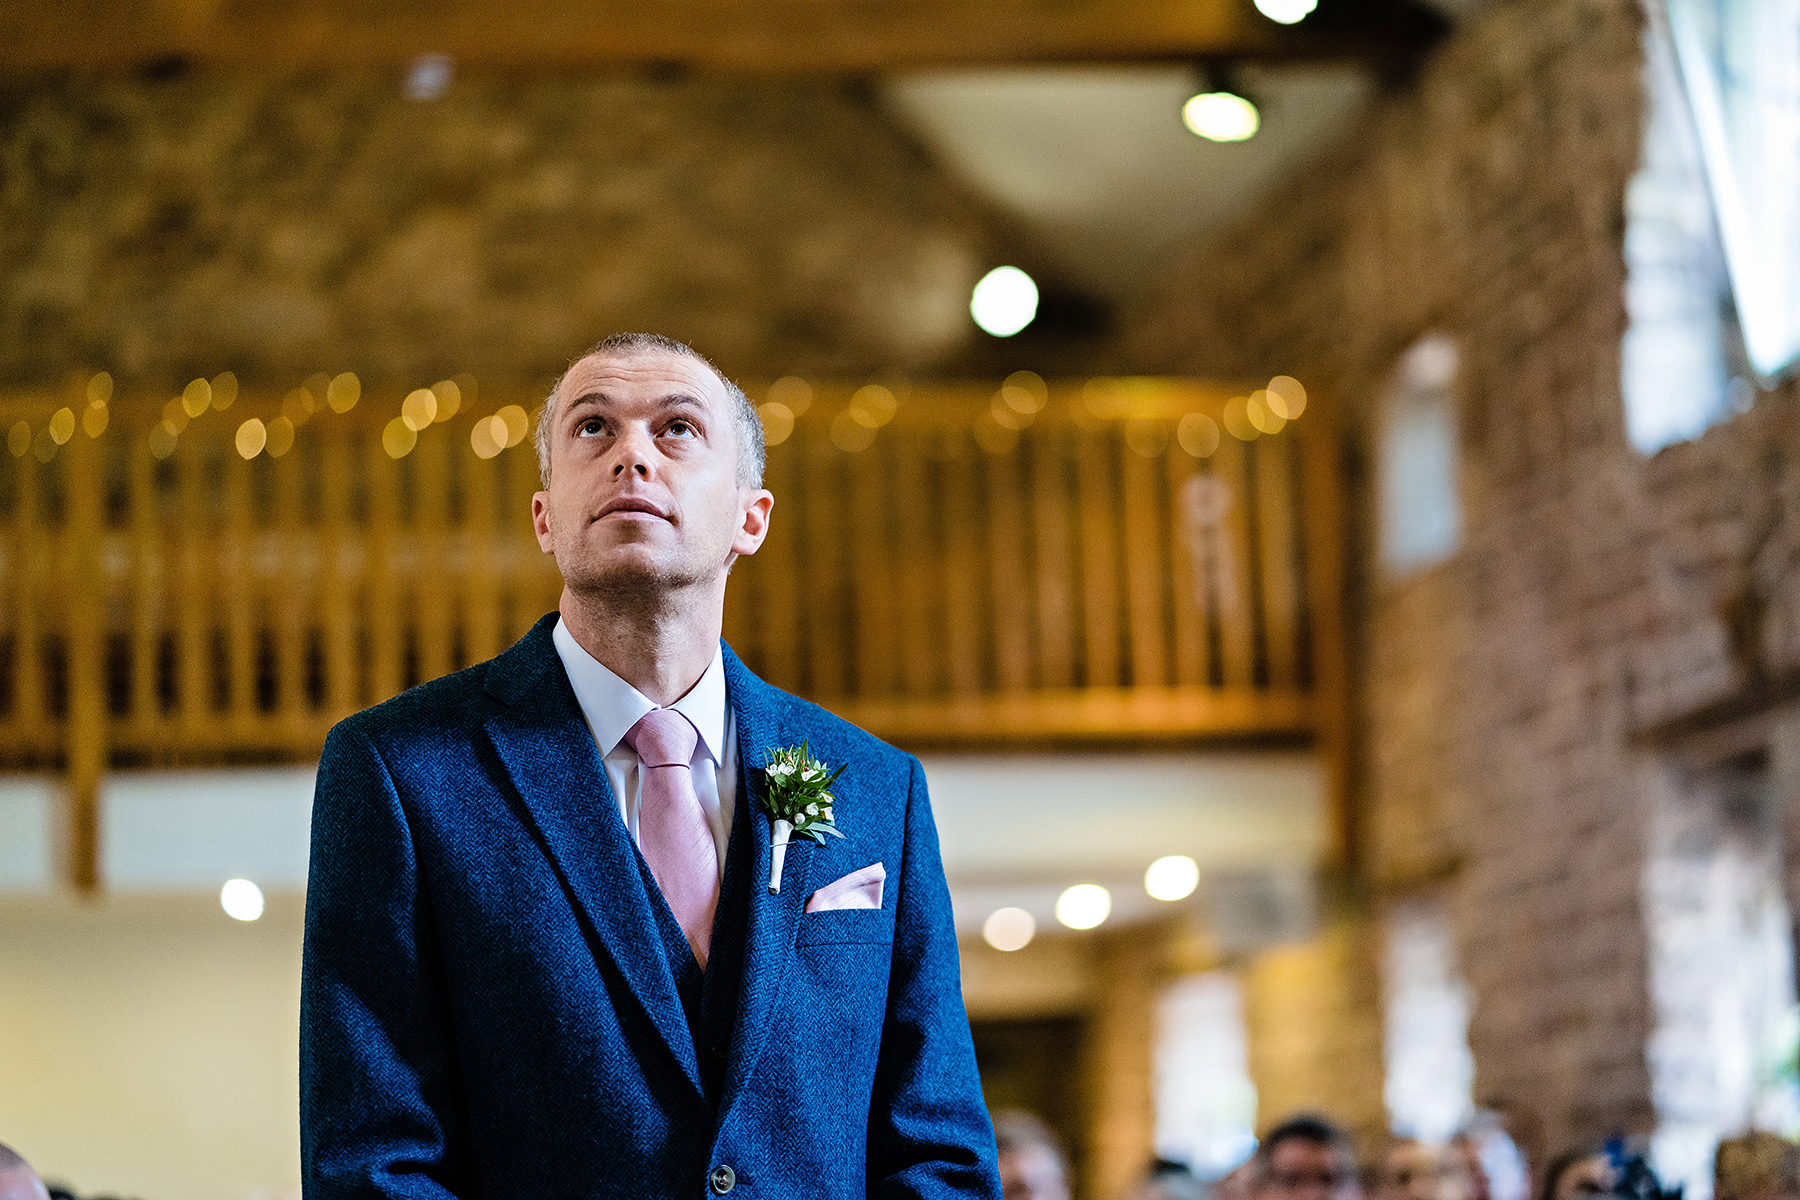 Wedding photography of the groom awaiting the bride